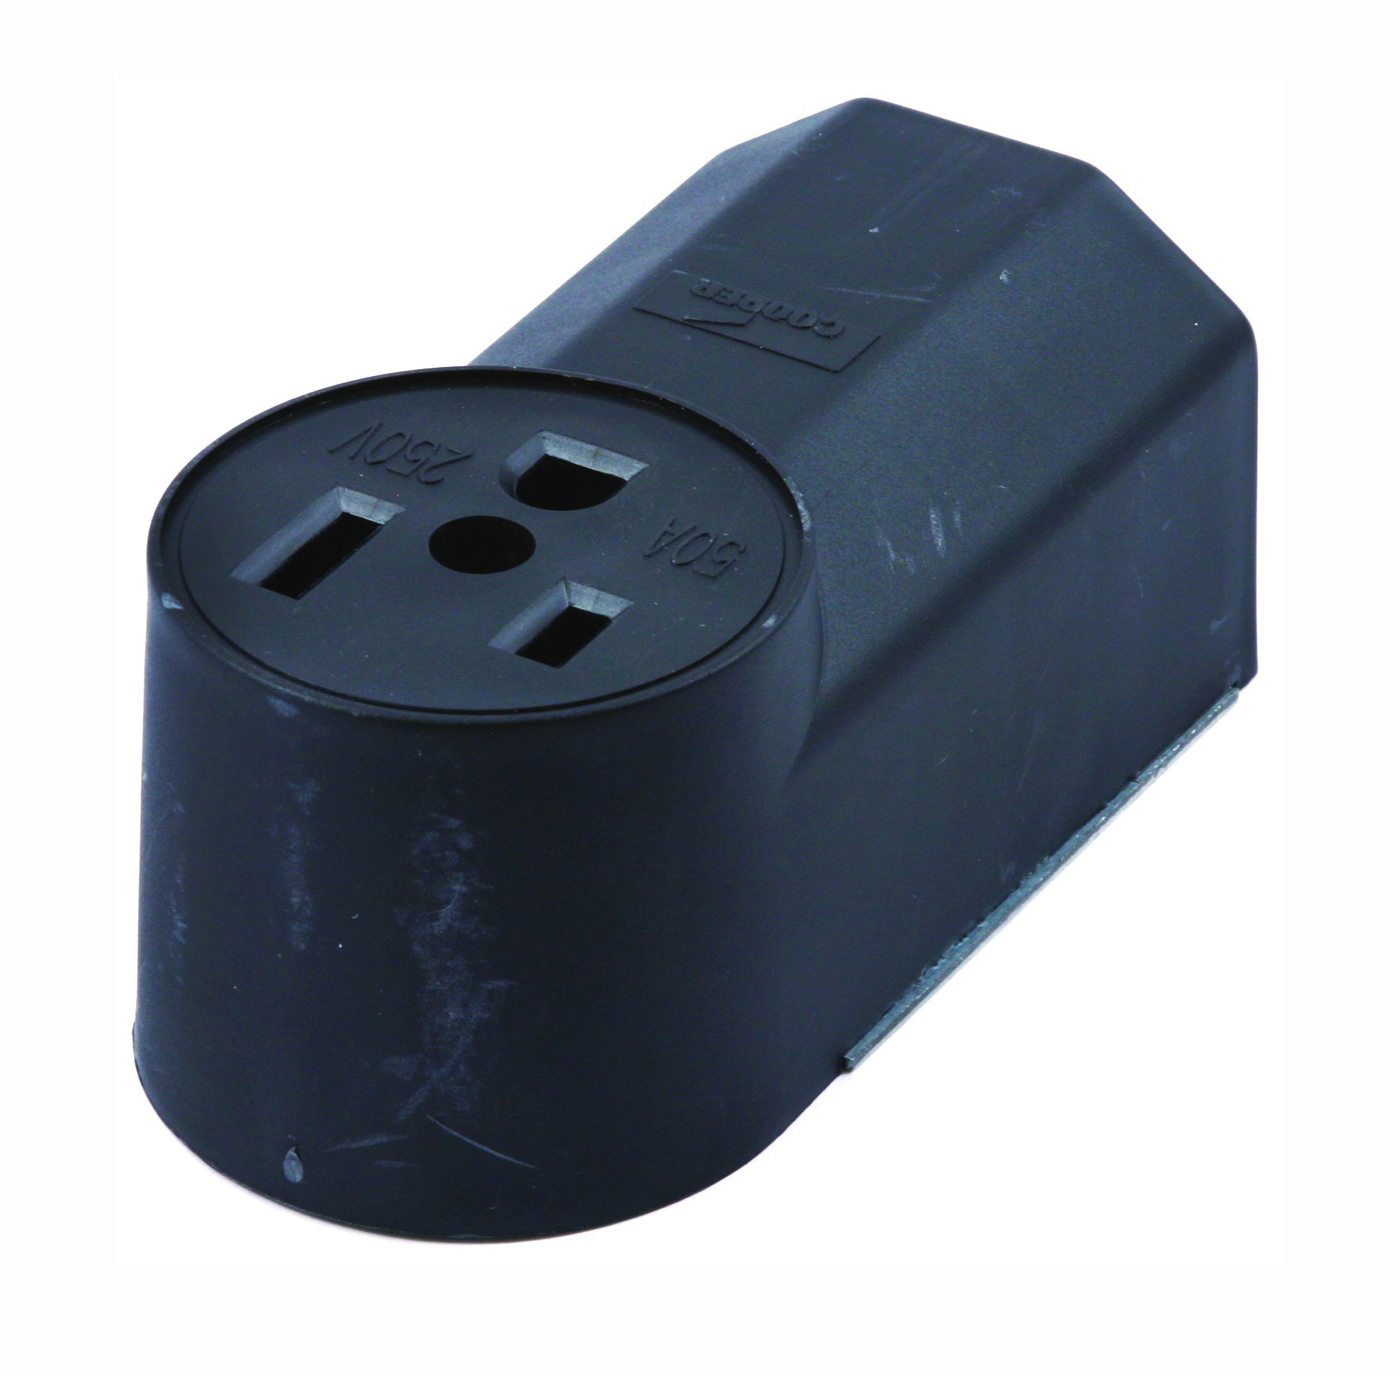 Picture of Forney 58402 Electrical Receptacle, 125/250 V, 50 A, 2 -Pole, Black